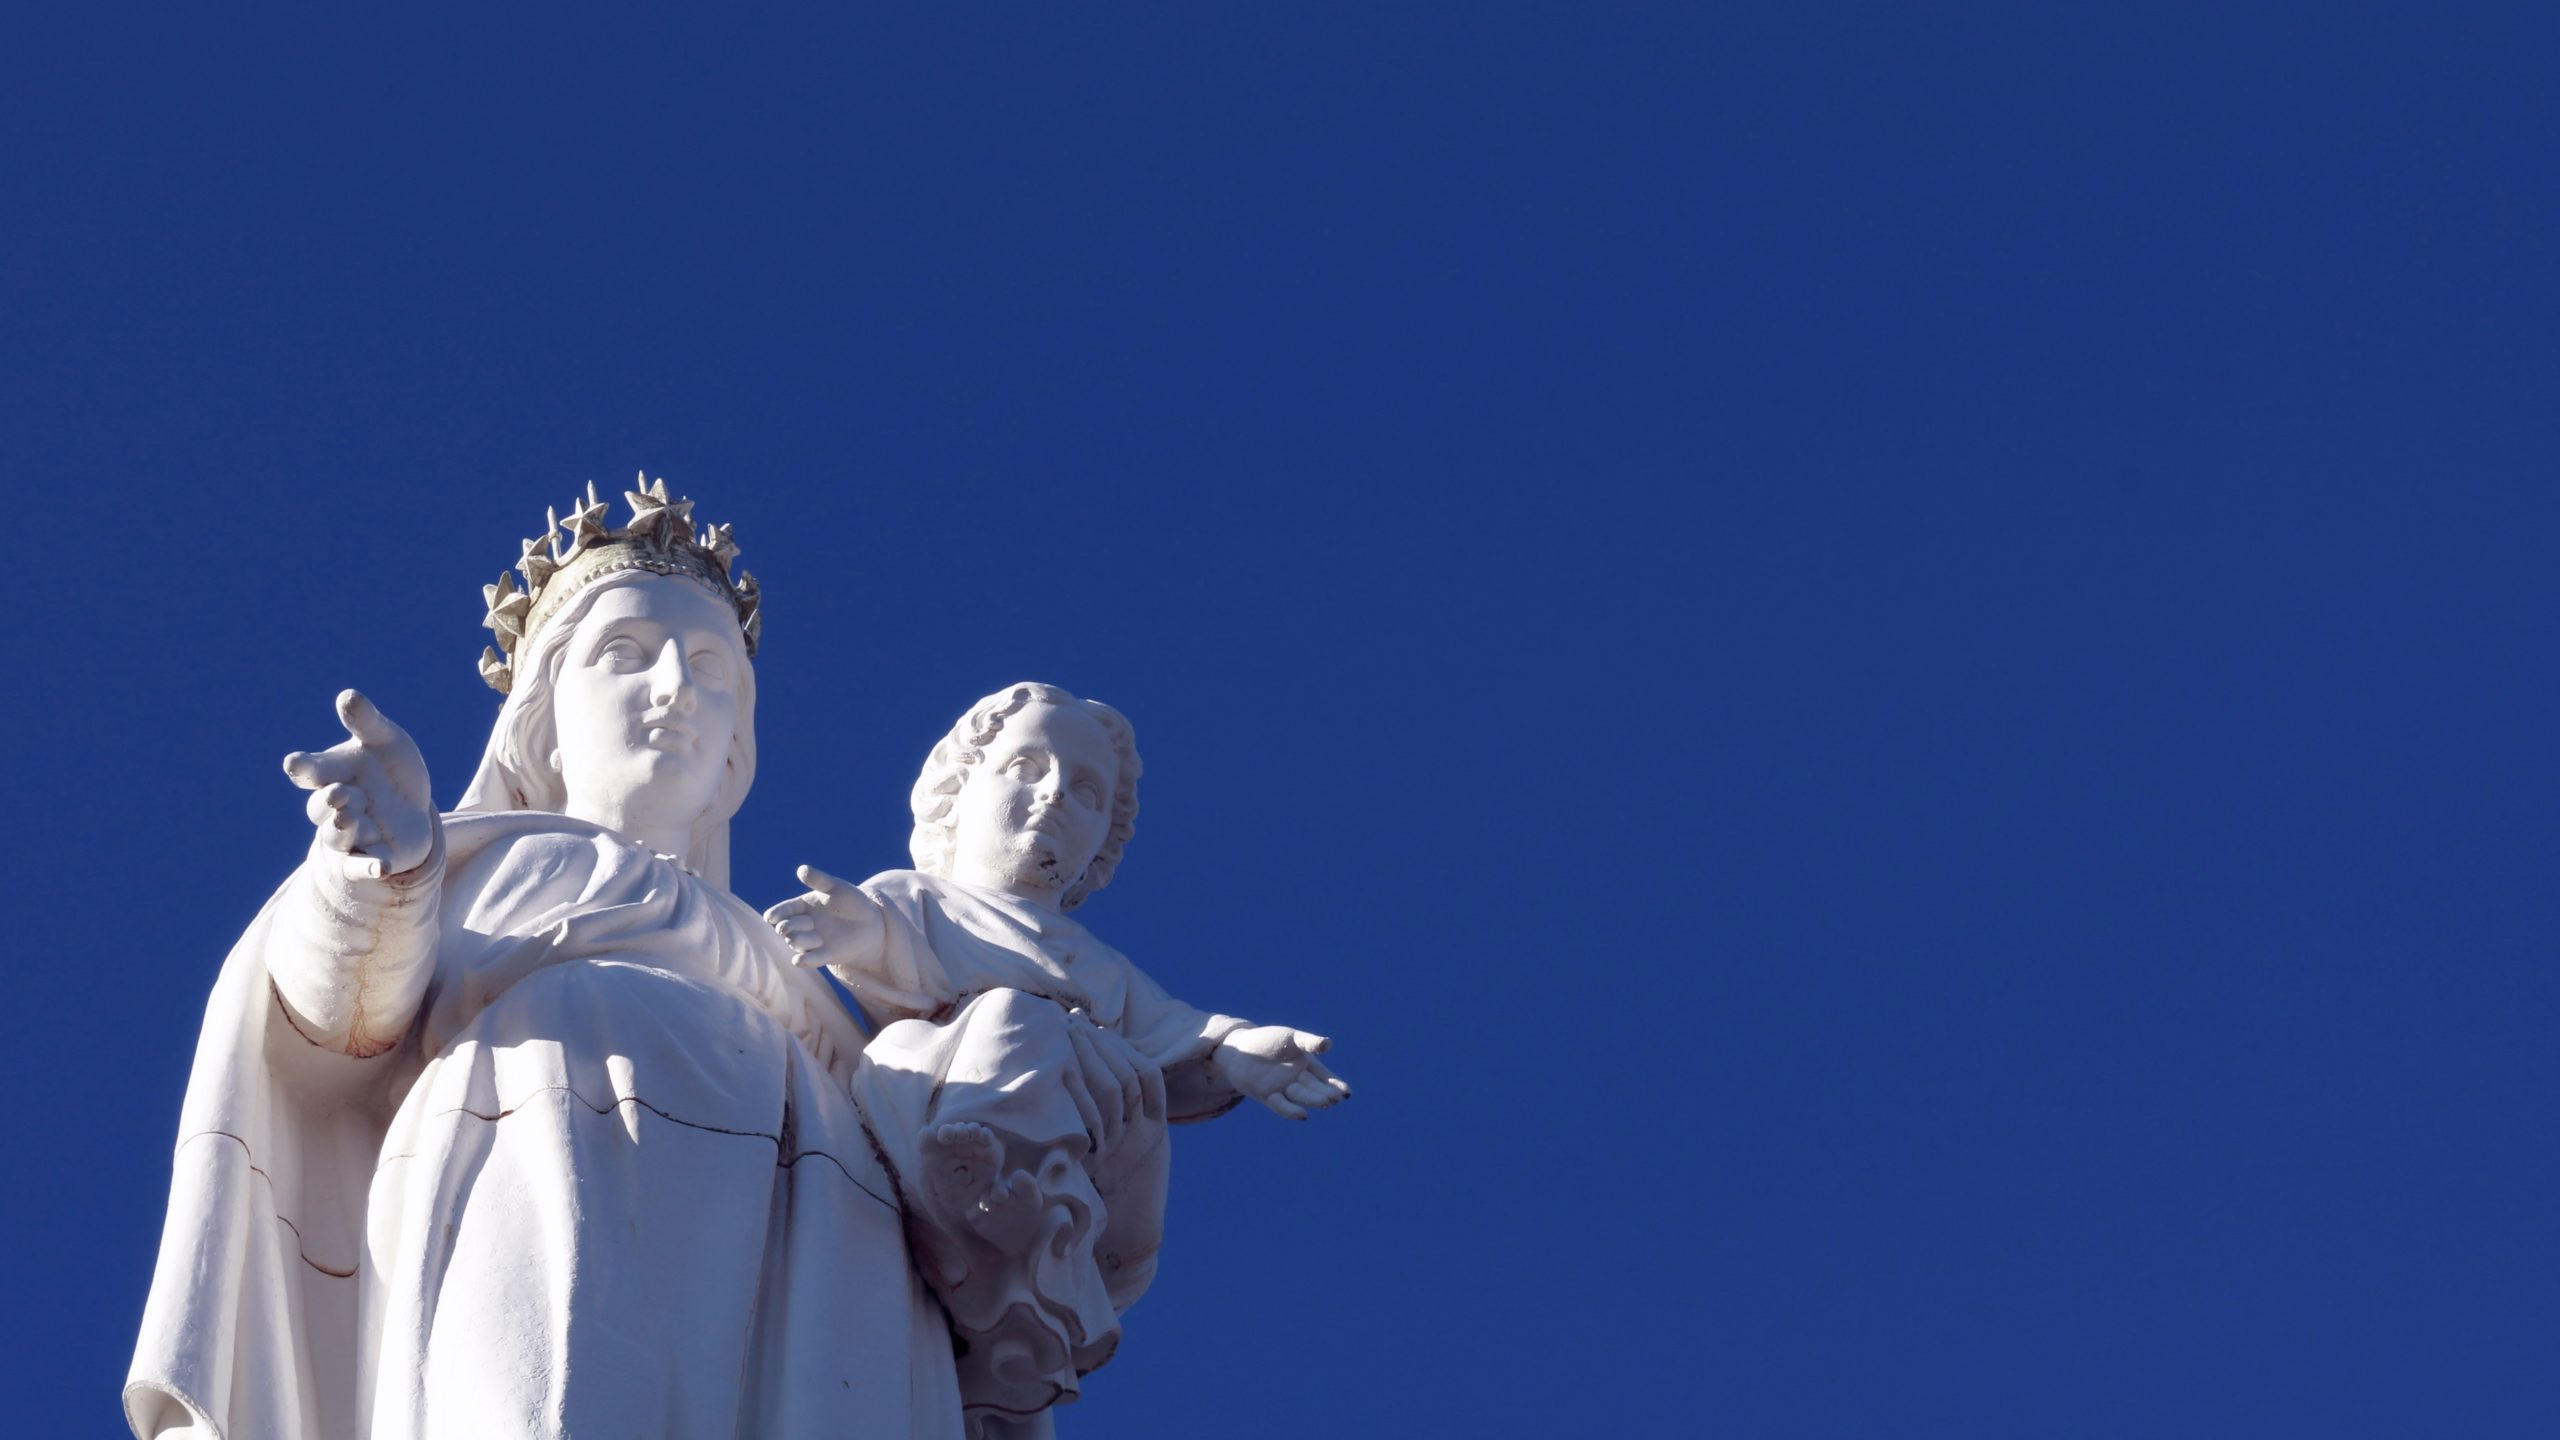 Consecration of Canada and the United States to the Blessed Virgin Mary on  May 1 | Salt and Light Catholic Media Foundation